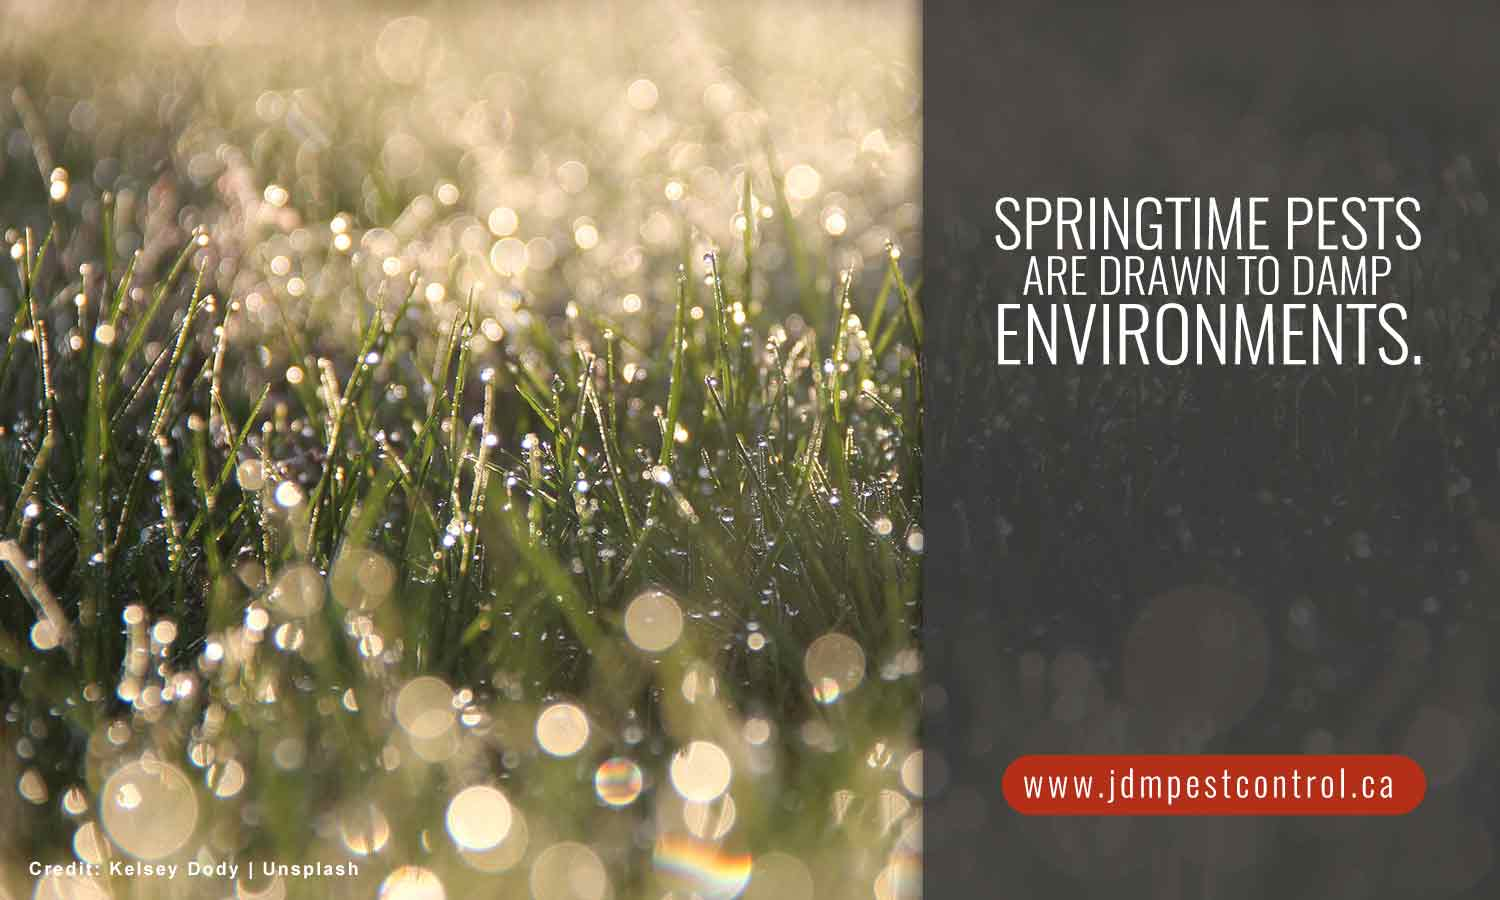 Springtime pests are drawn to damp environments.